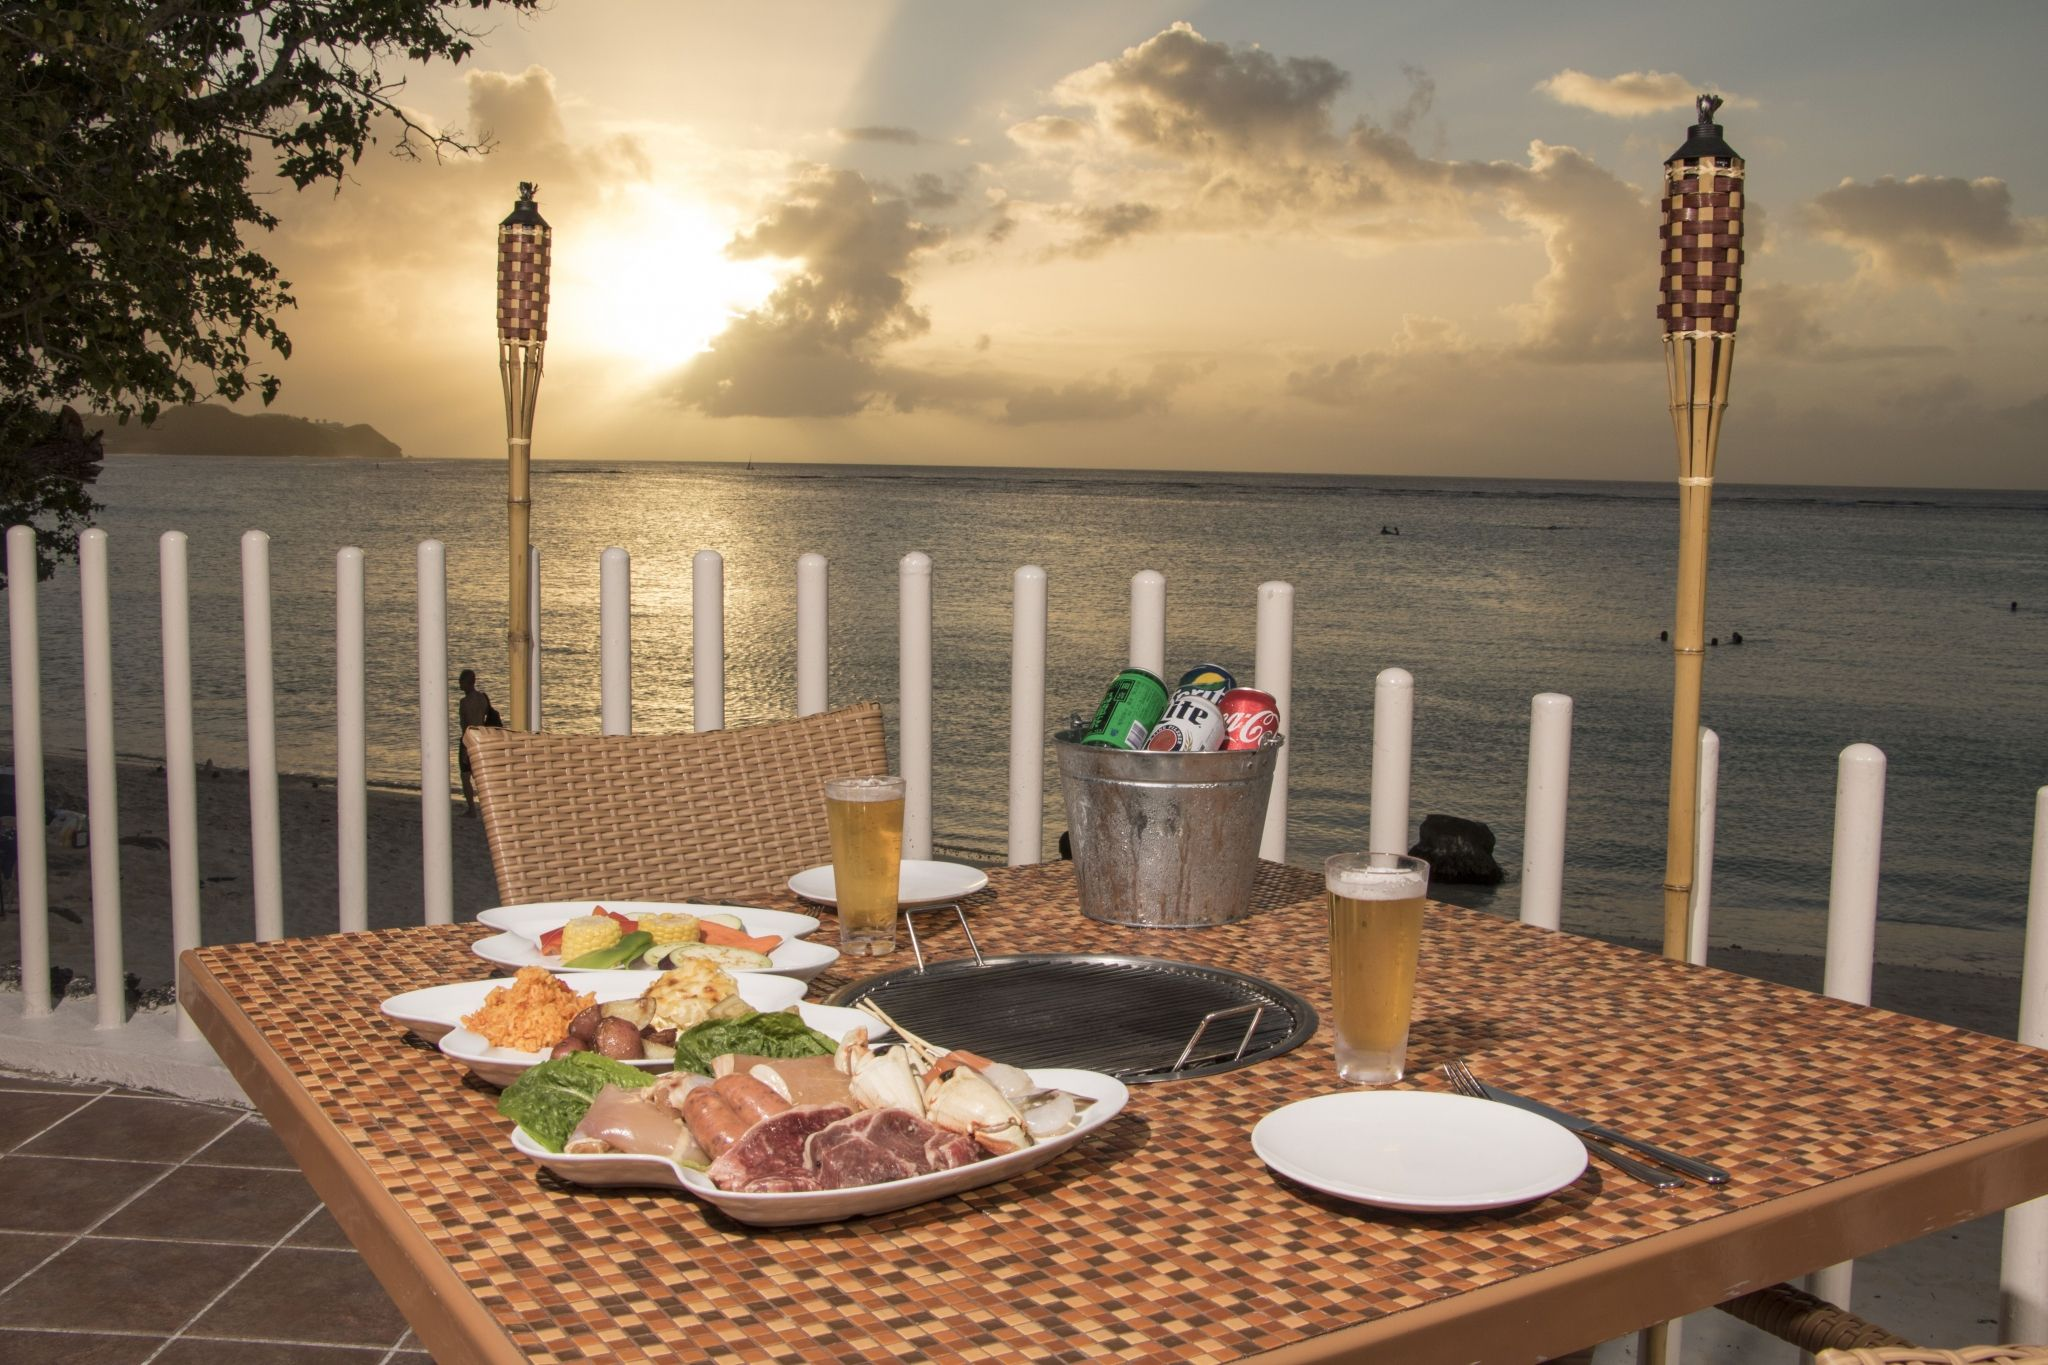 Starlight BBQ with magnificent views of Guam's iconic evening skies.